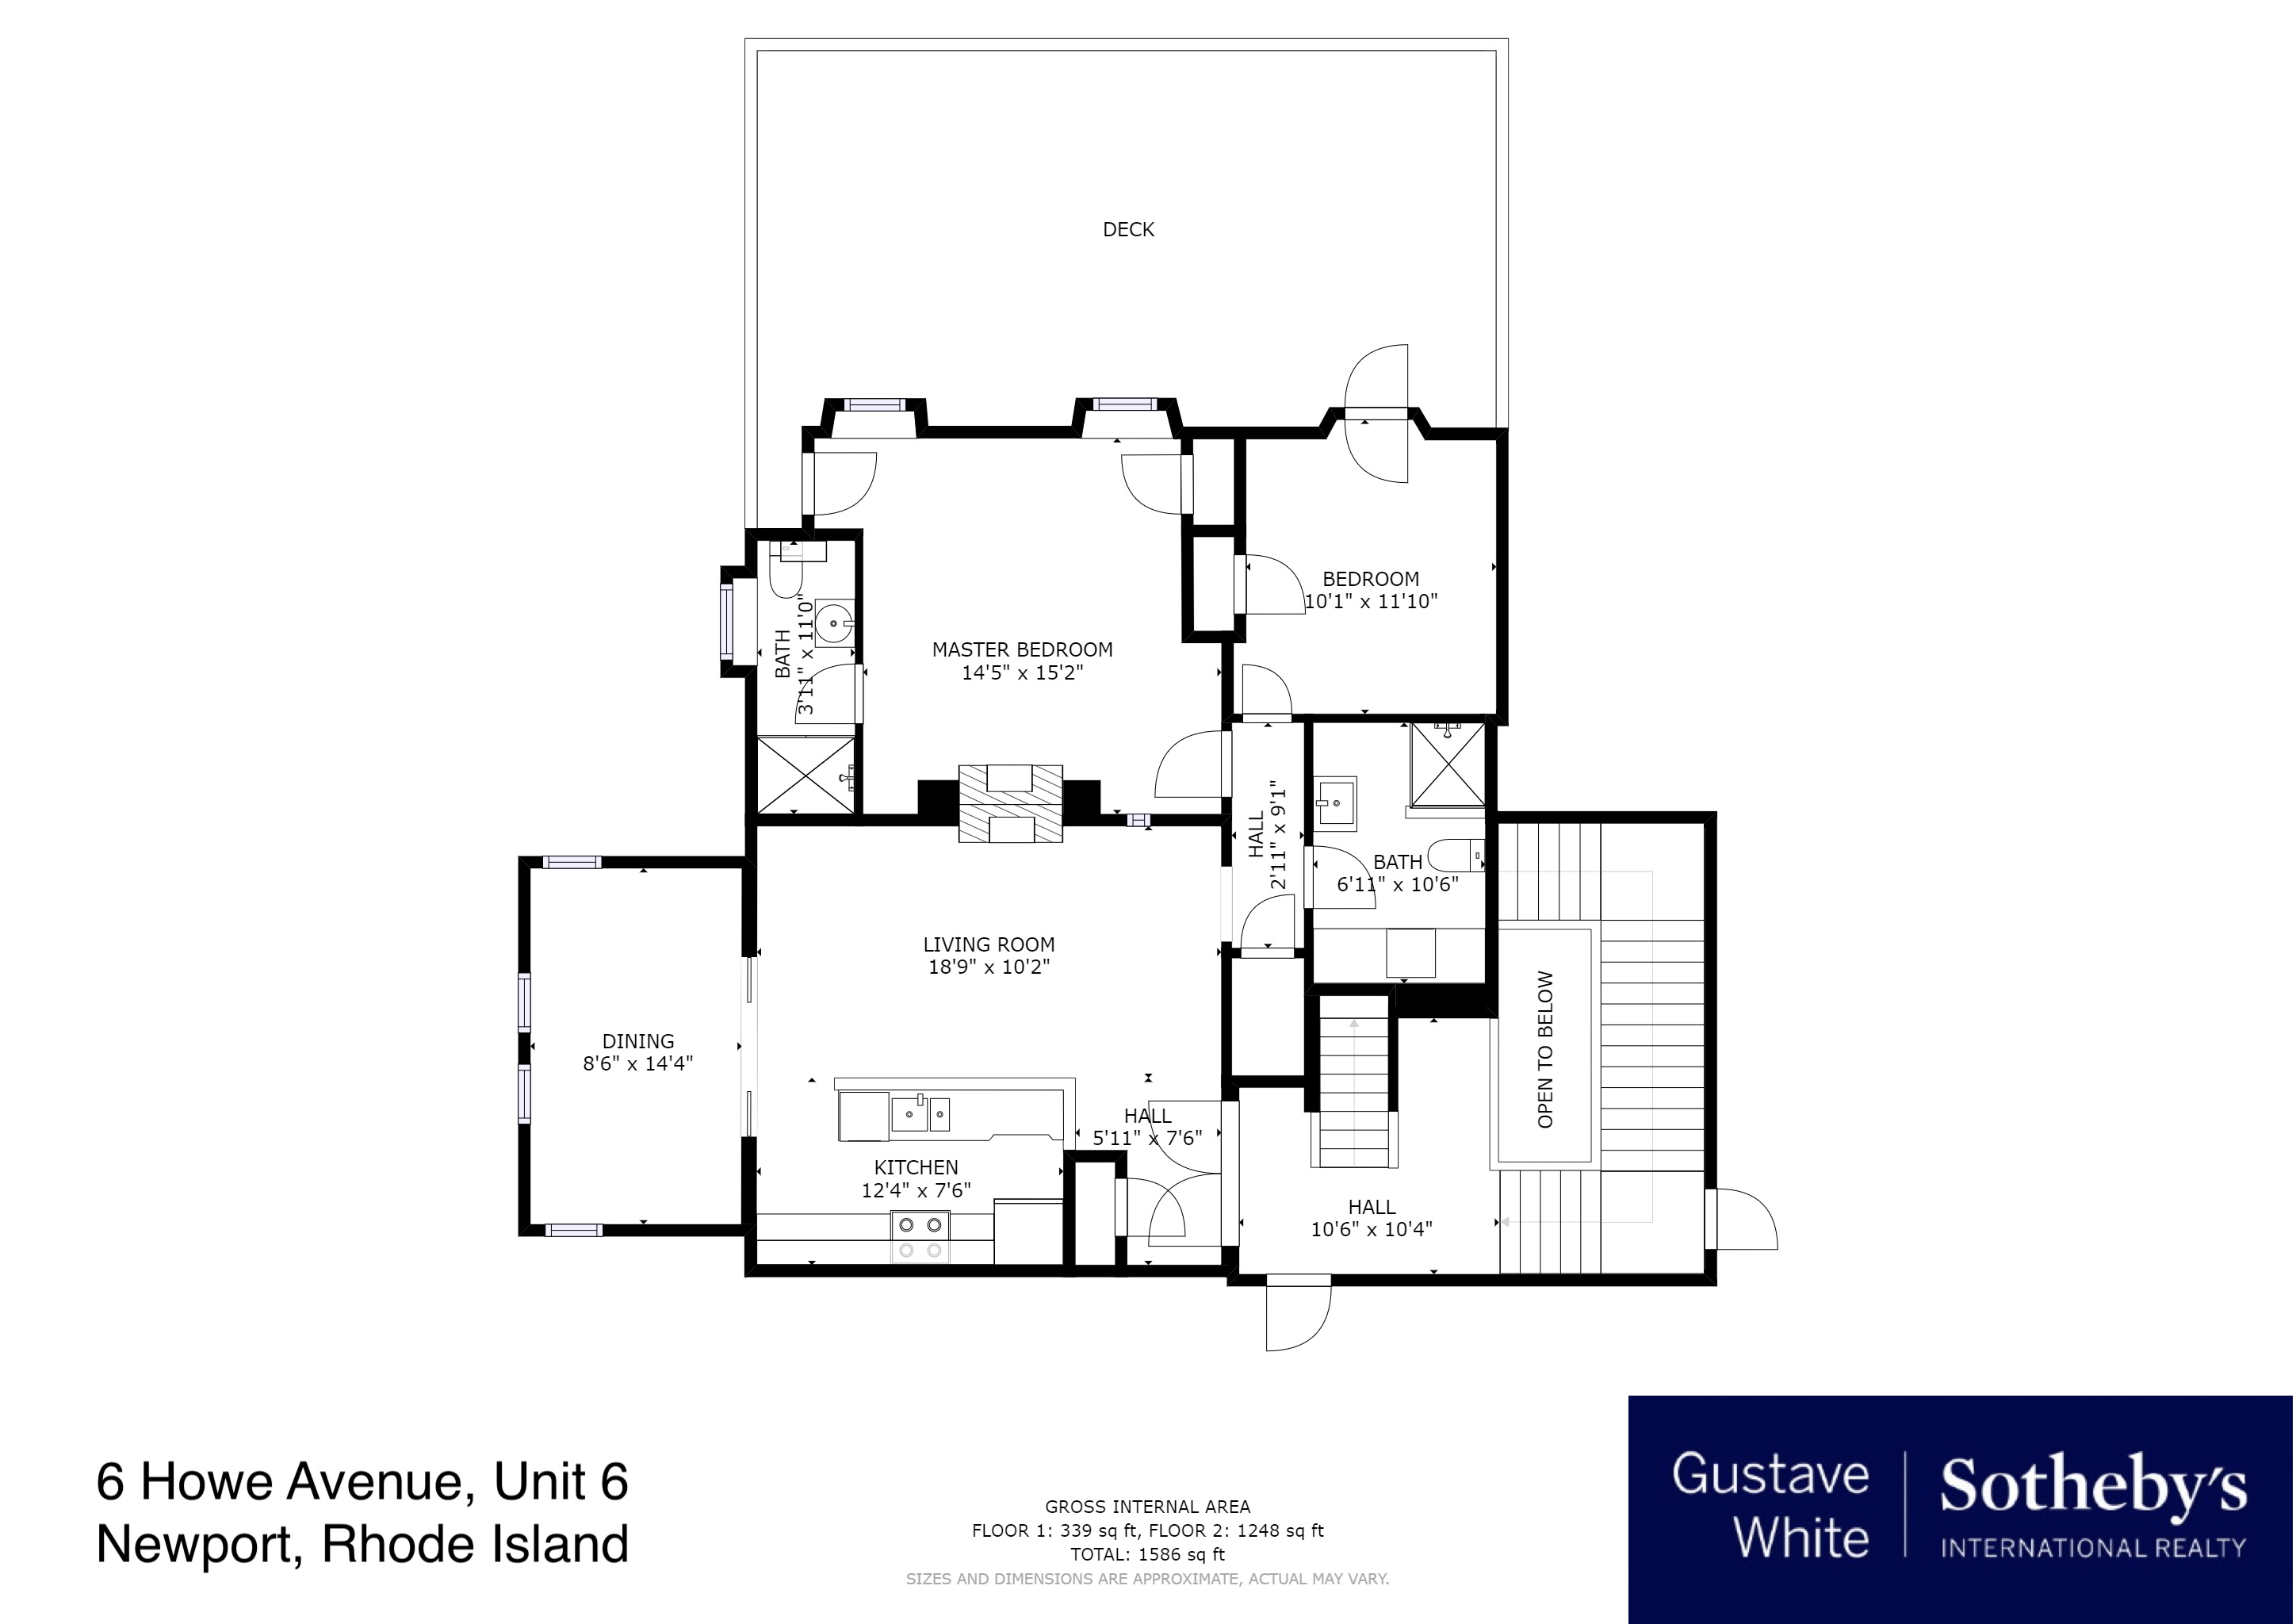 Condominiums for Sale at The Hedges 6 Howe Avenue, Unit 6 Newport, Rhode Island 02840 United States